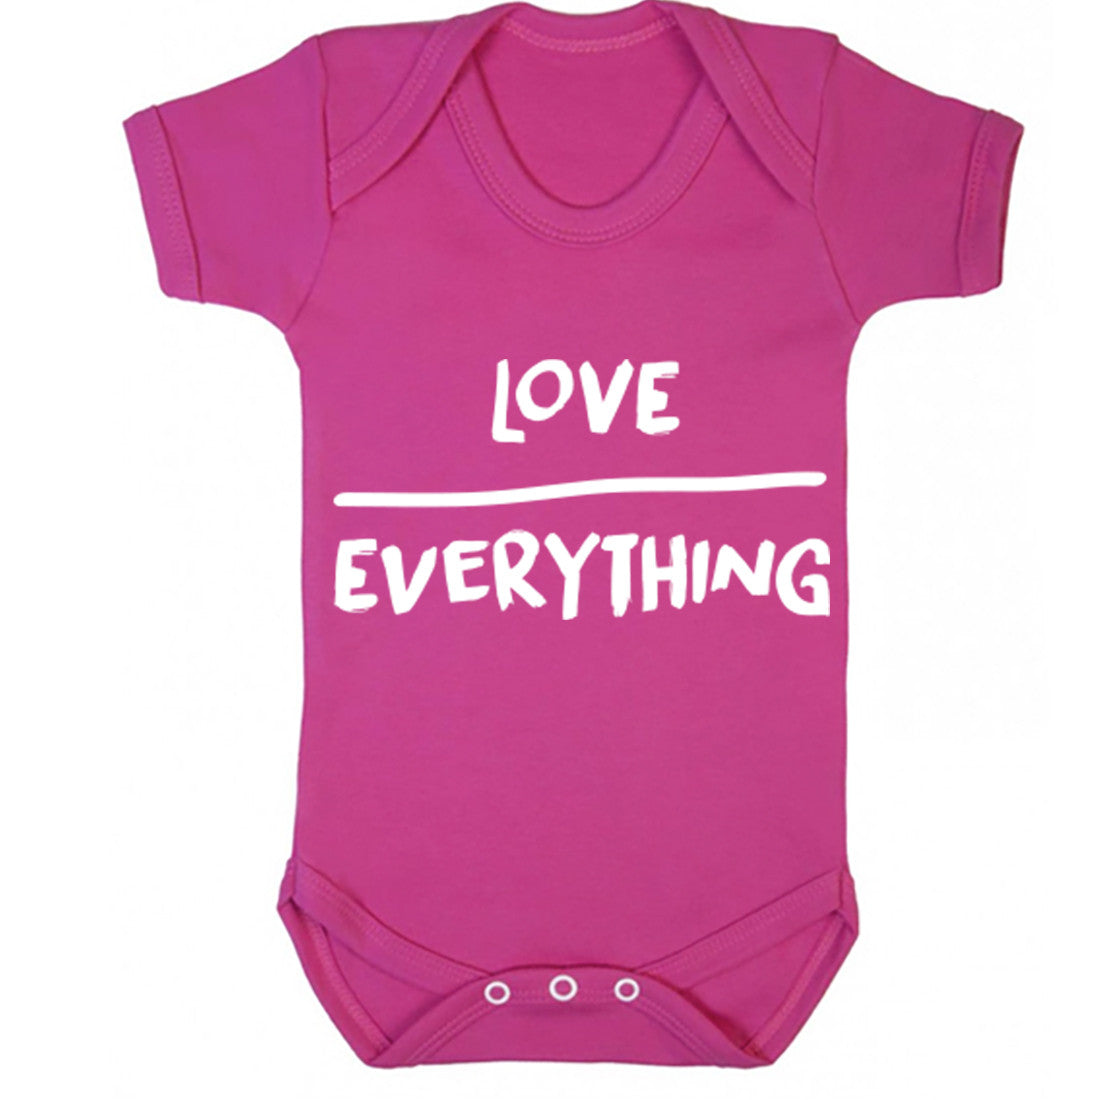 Love Over Everything Baby Vest K0128